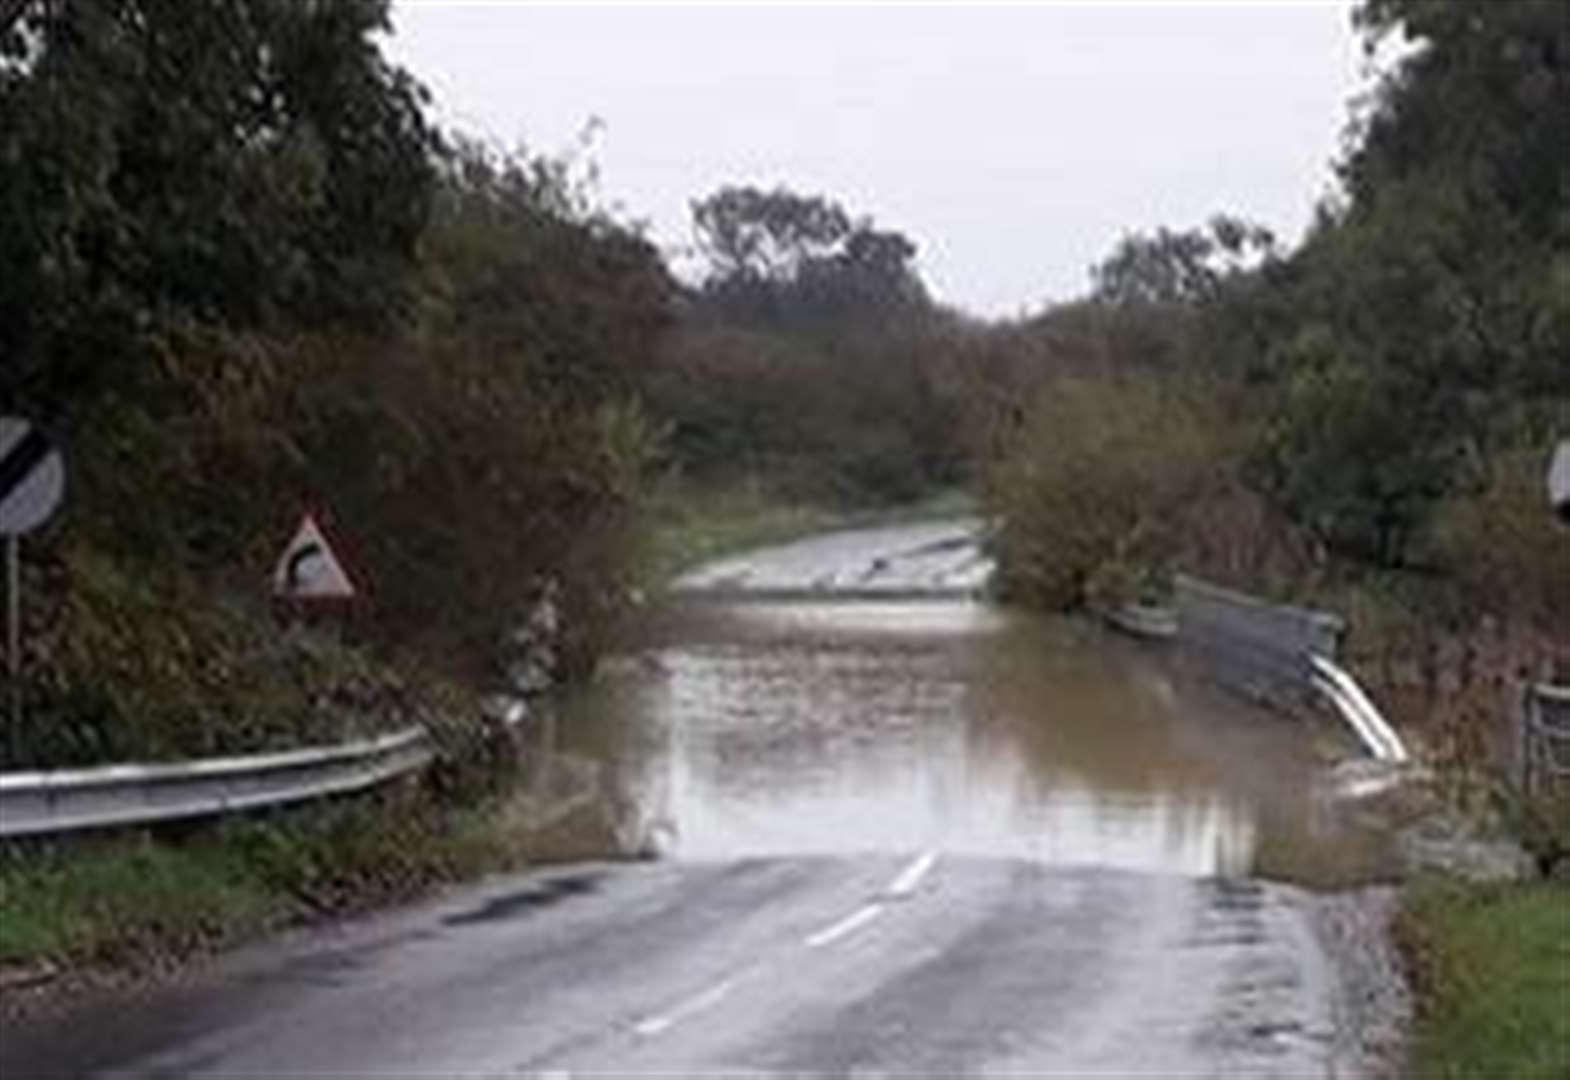 Village near Grantham is hit by flash floods